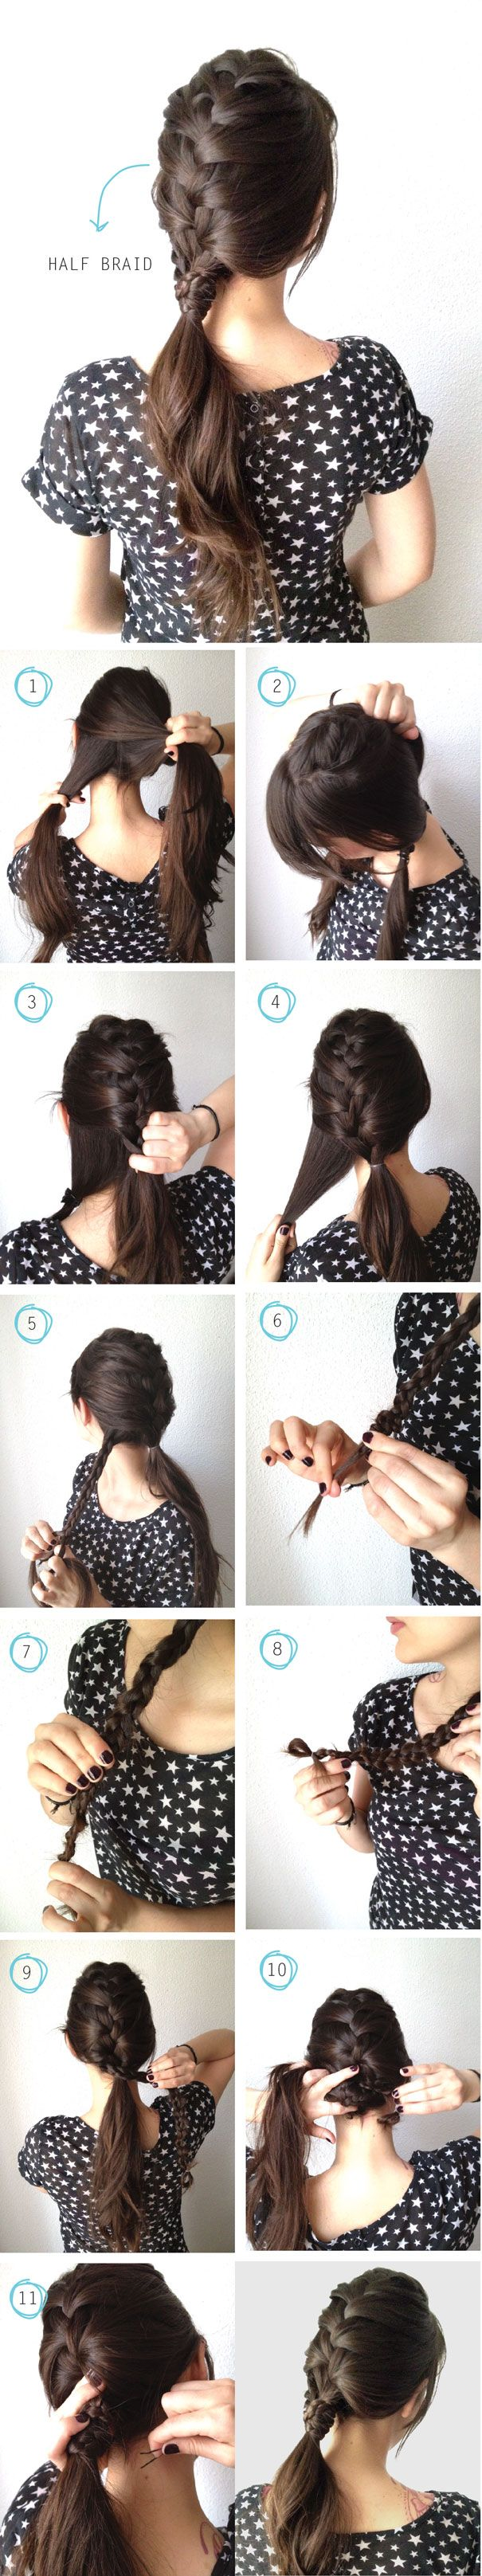 Hair style Suggestion